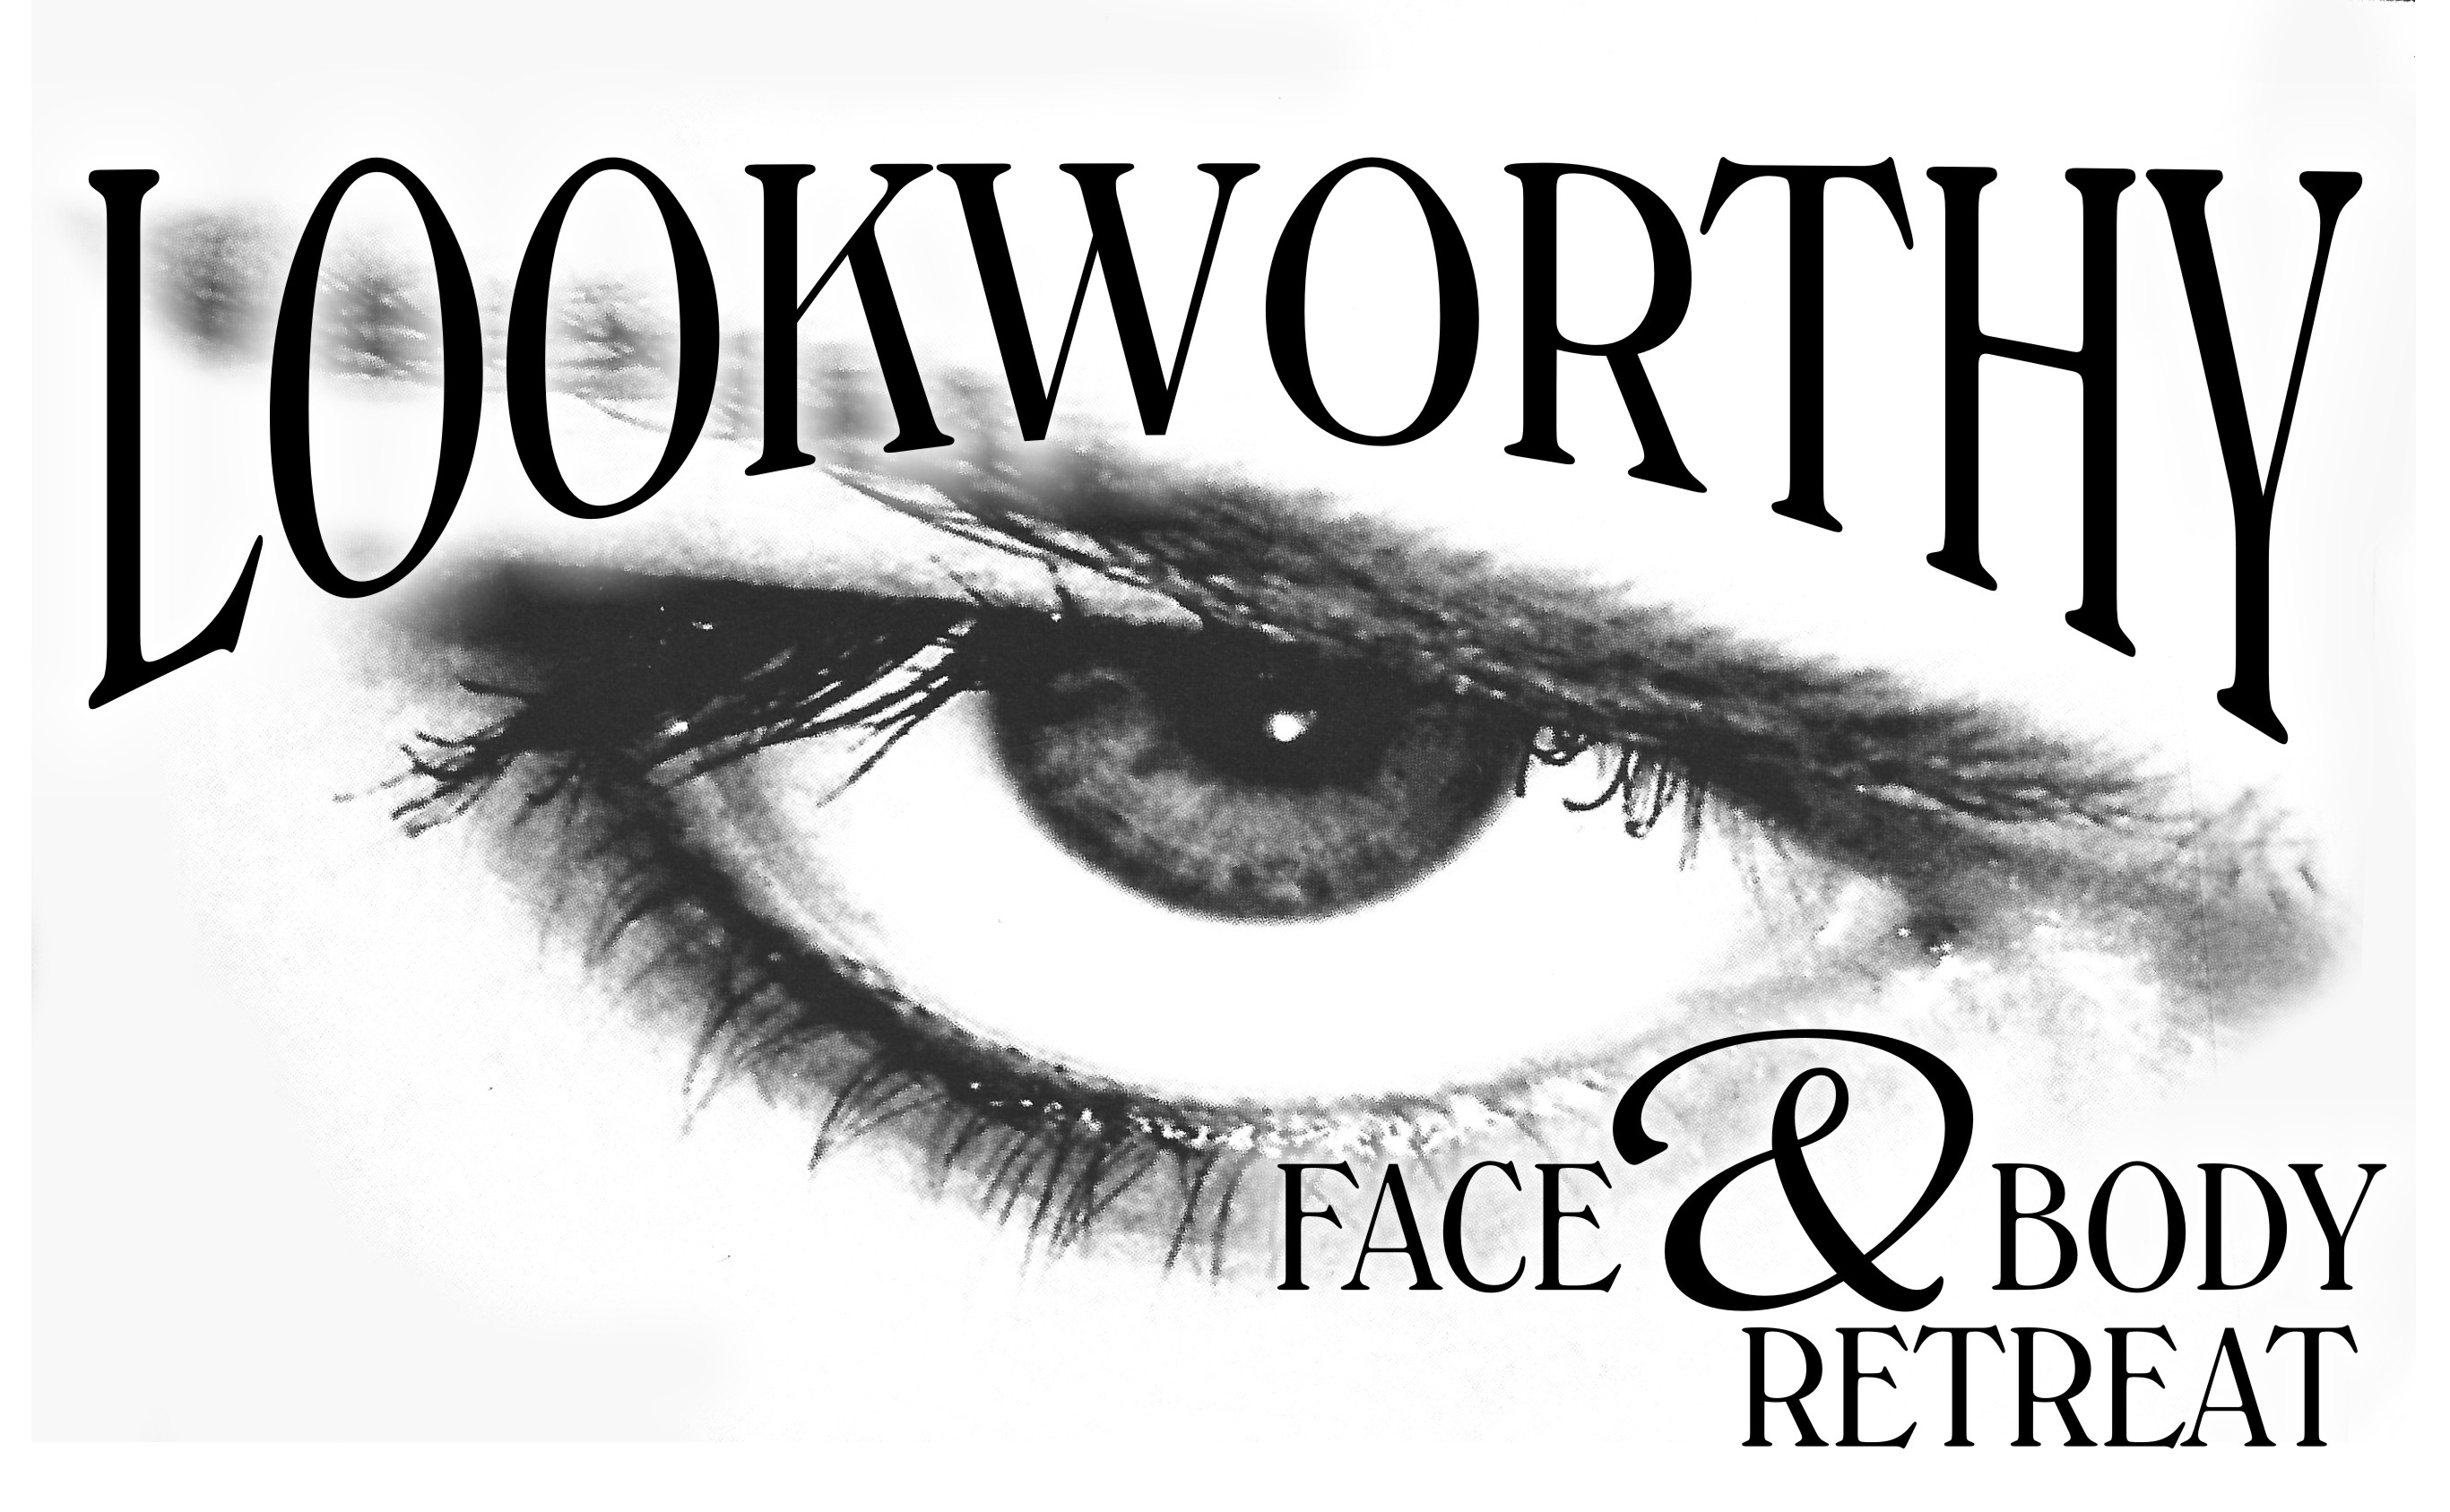 Lookworthy Face & Body Retreat